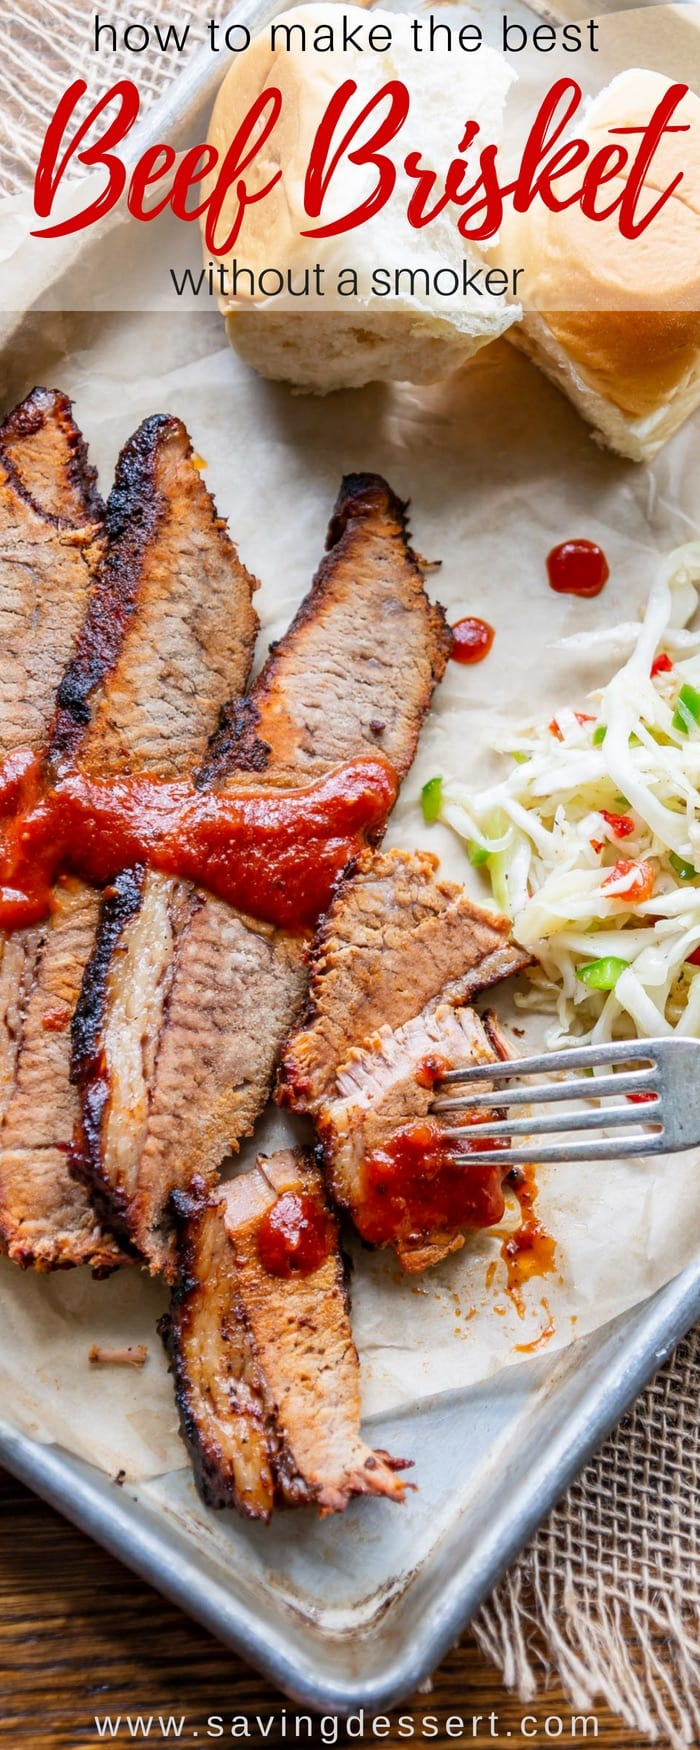 BBQ Brisket Recipe - making delicious, tender, flavorful and juicy BBQ Brisket is easier than you think! If you have a grill and an oven, you're all set. #savingroomfordessert #beef #brisket #brisketrecipes #brisketrecipeoven #beefbrisket #bbqbrisket #BBQ